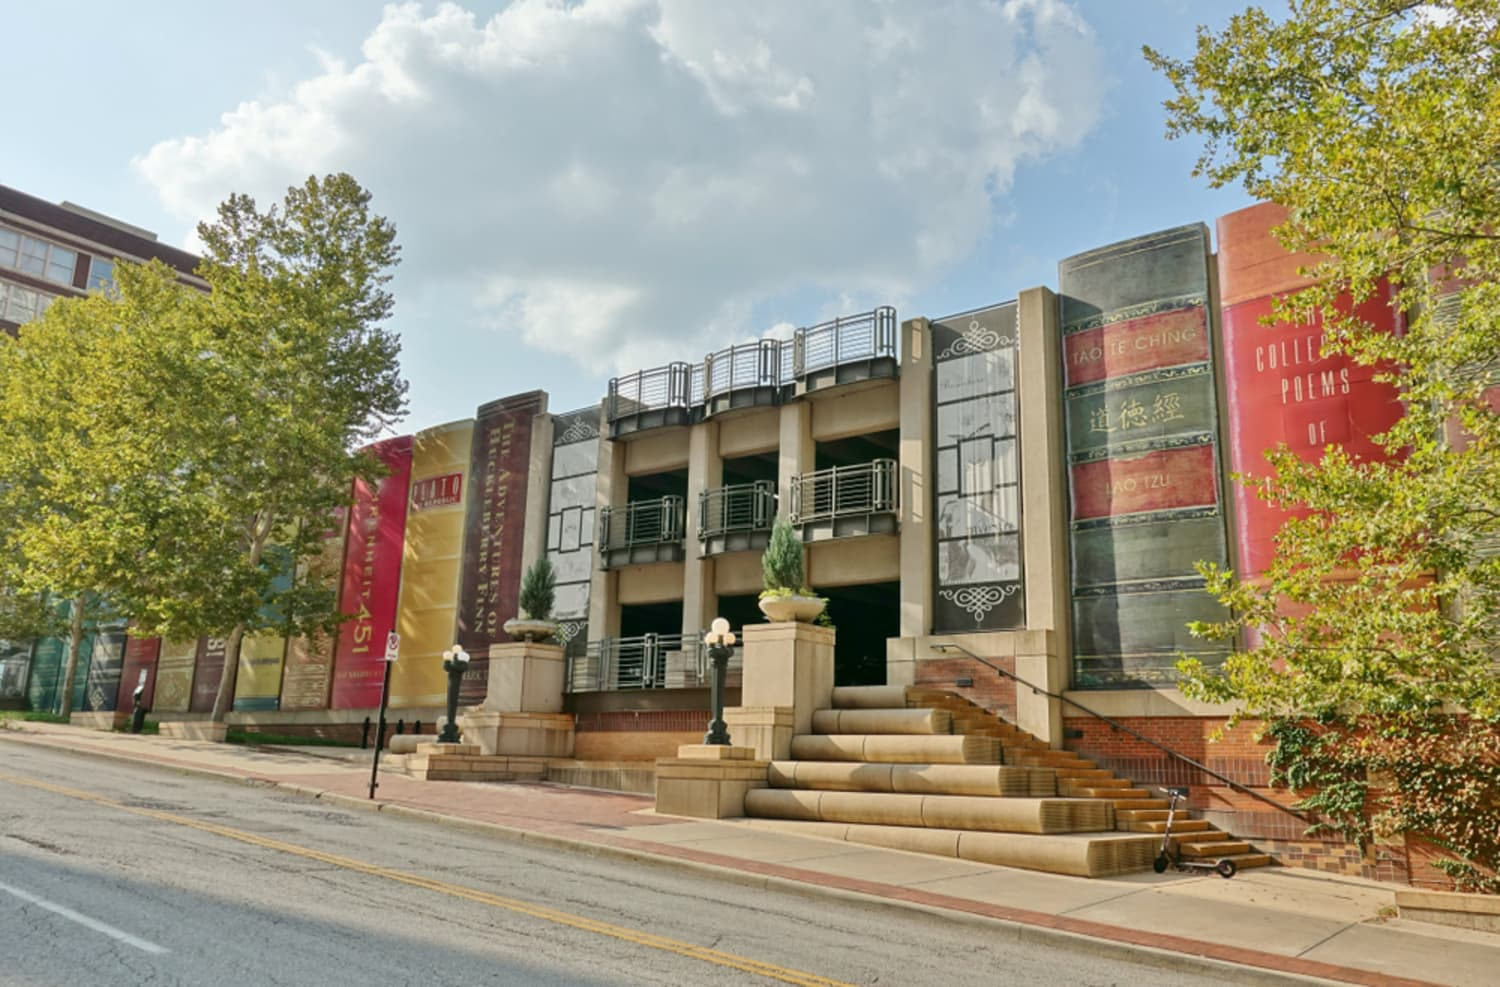 Attention, Bibliophiles: This Library Was Designed to Look Like a Bookshelf